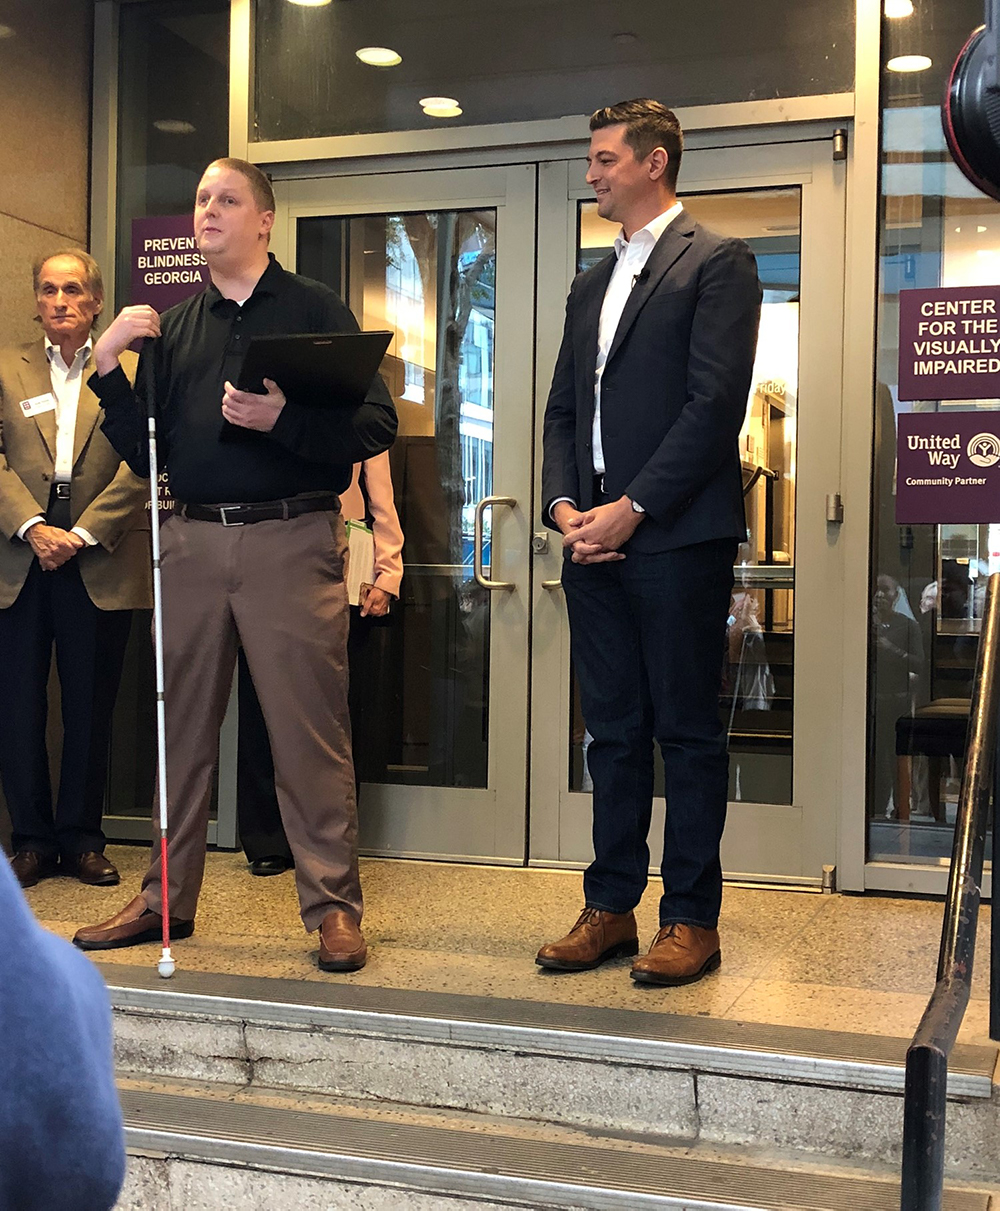 Center for the Visually Impaired former client and current employee Adam Hinchliffe introduces City Council Member Amir Farokhi in October 2019, when Farokhi issued a proclamation to declare Oct. 15 White Cane Awareness Day.